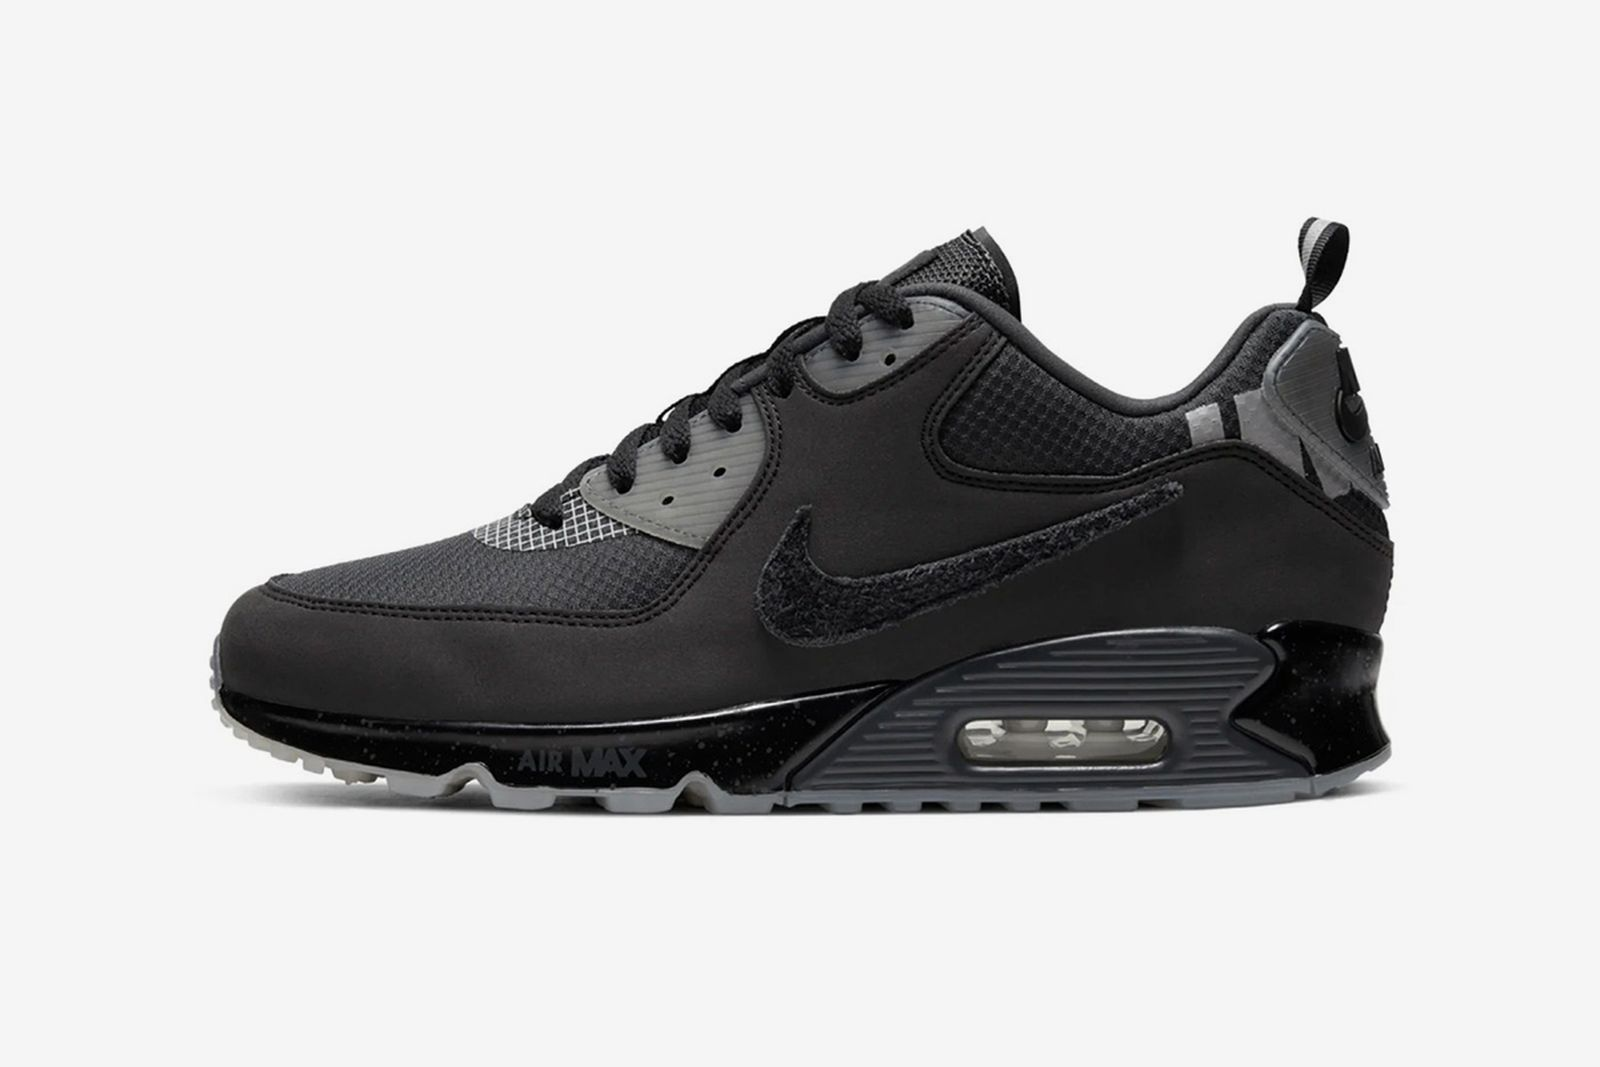 UNDEFEATED x Nike Air Max 90 Black